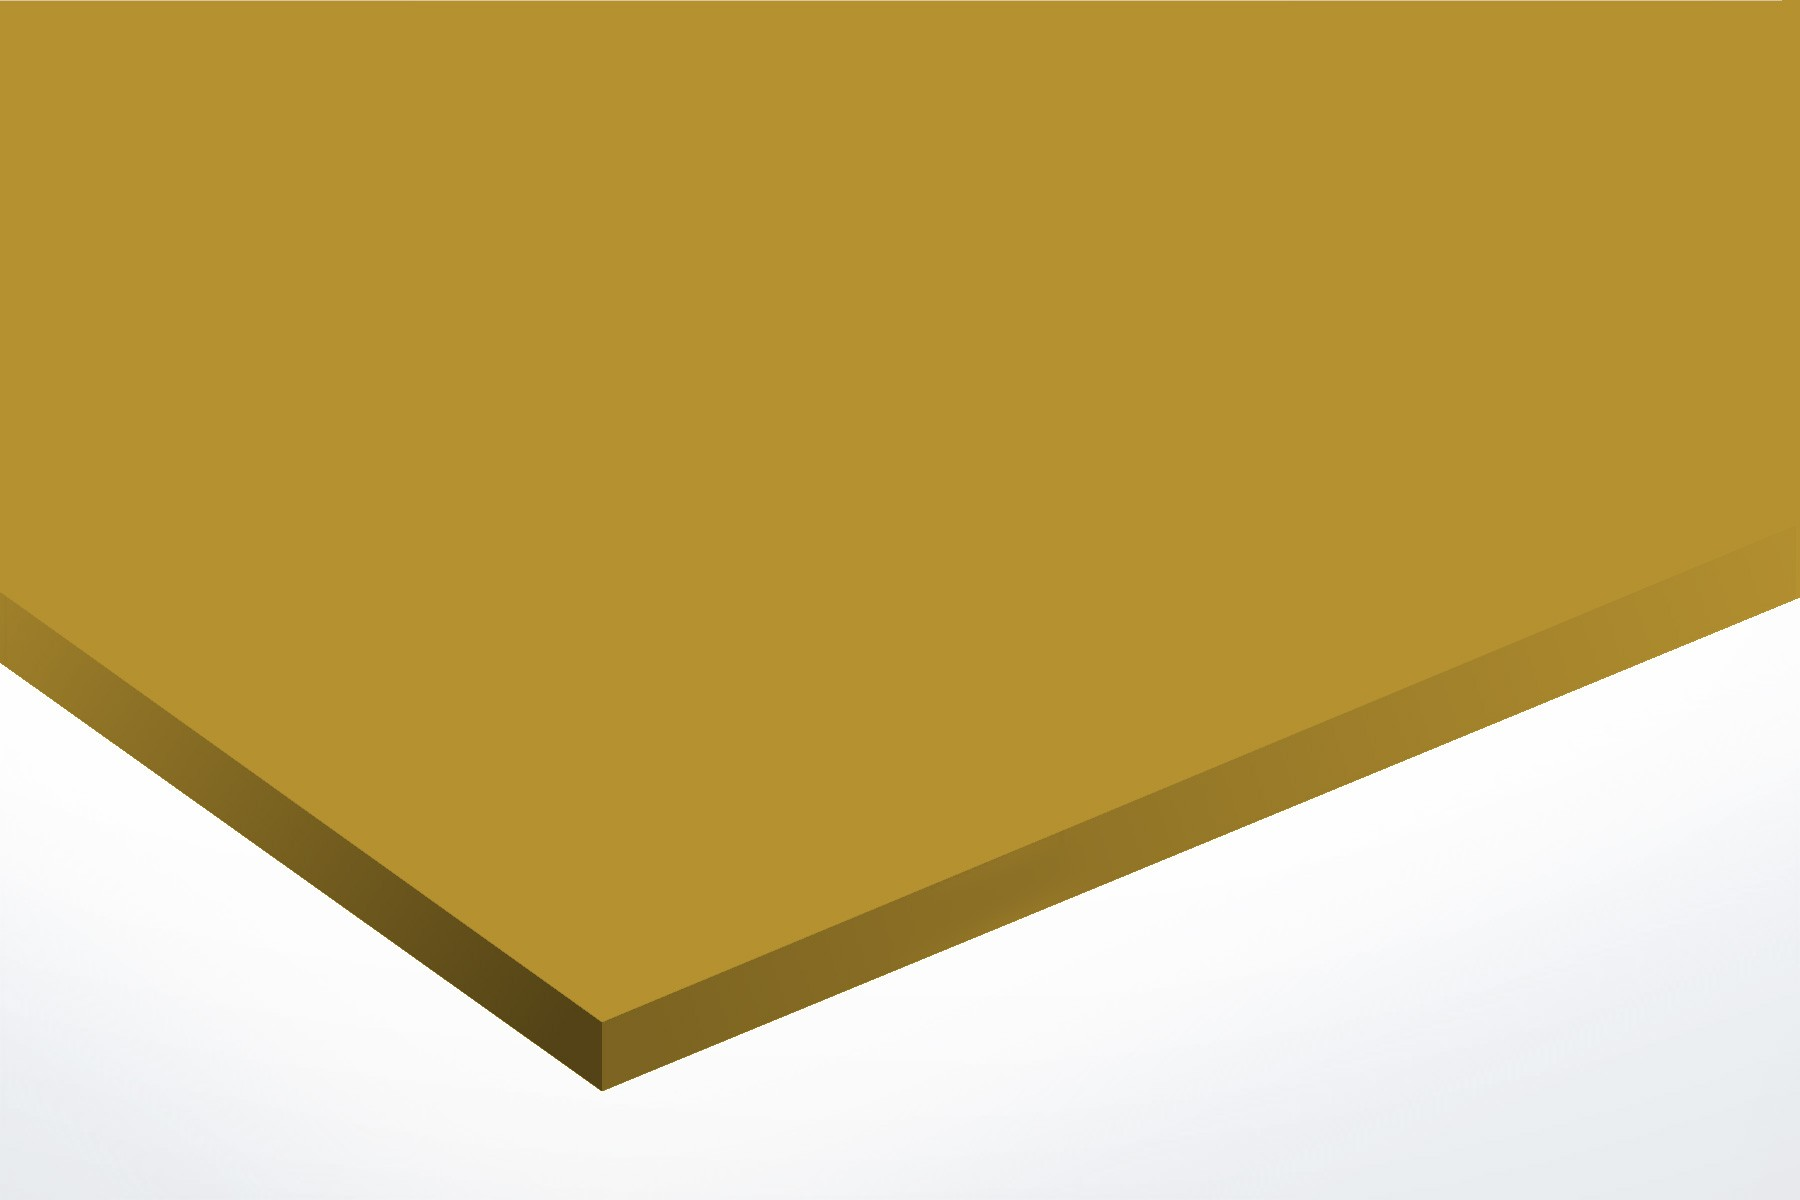 Anodised Aluminium Gold, Matte, 1mm x 1000mm x 500mm